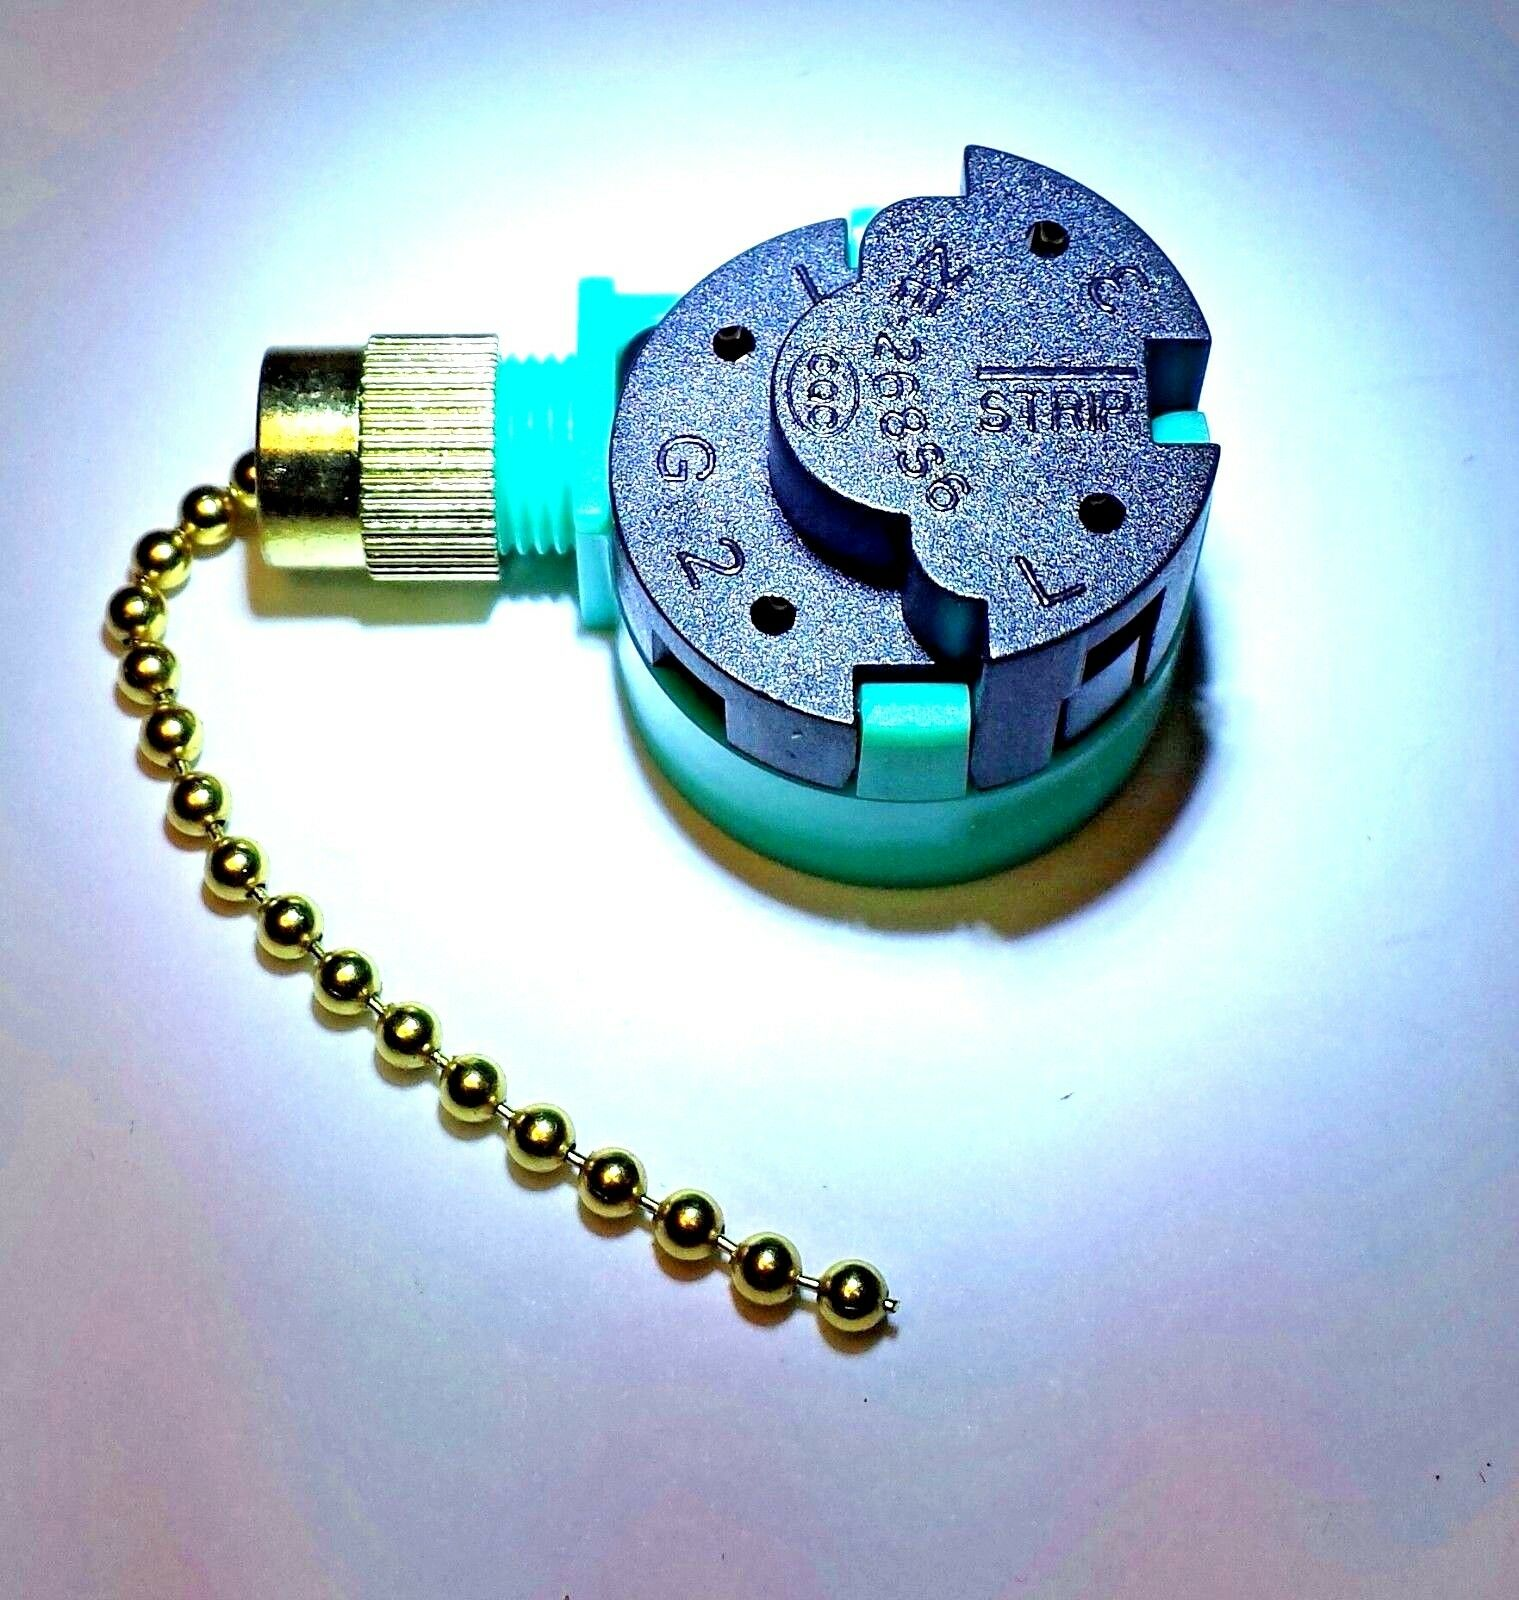 Zing Ear Pull Chain Switch Wiring Diagram Starting Know About Ceiling Fan Ze 268s6 Original 3 Speed Rh Picclick Com